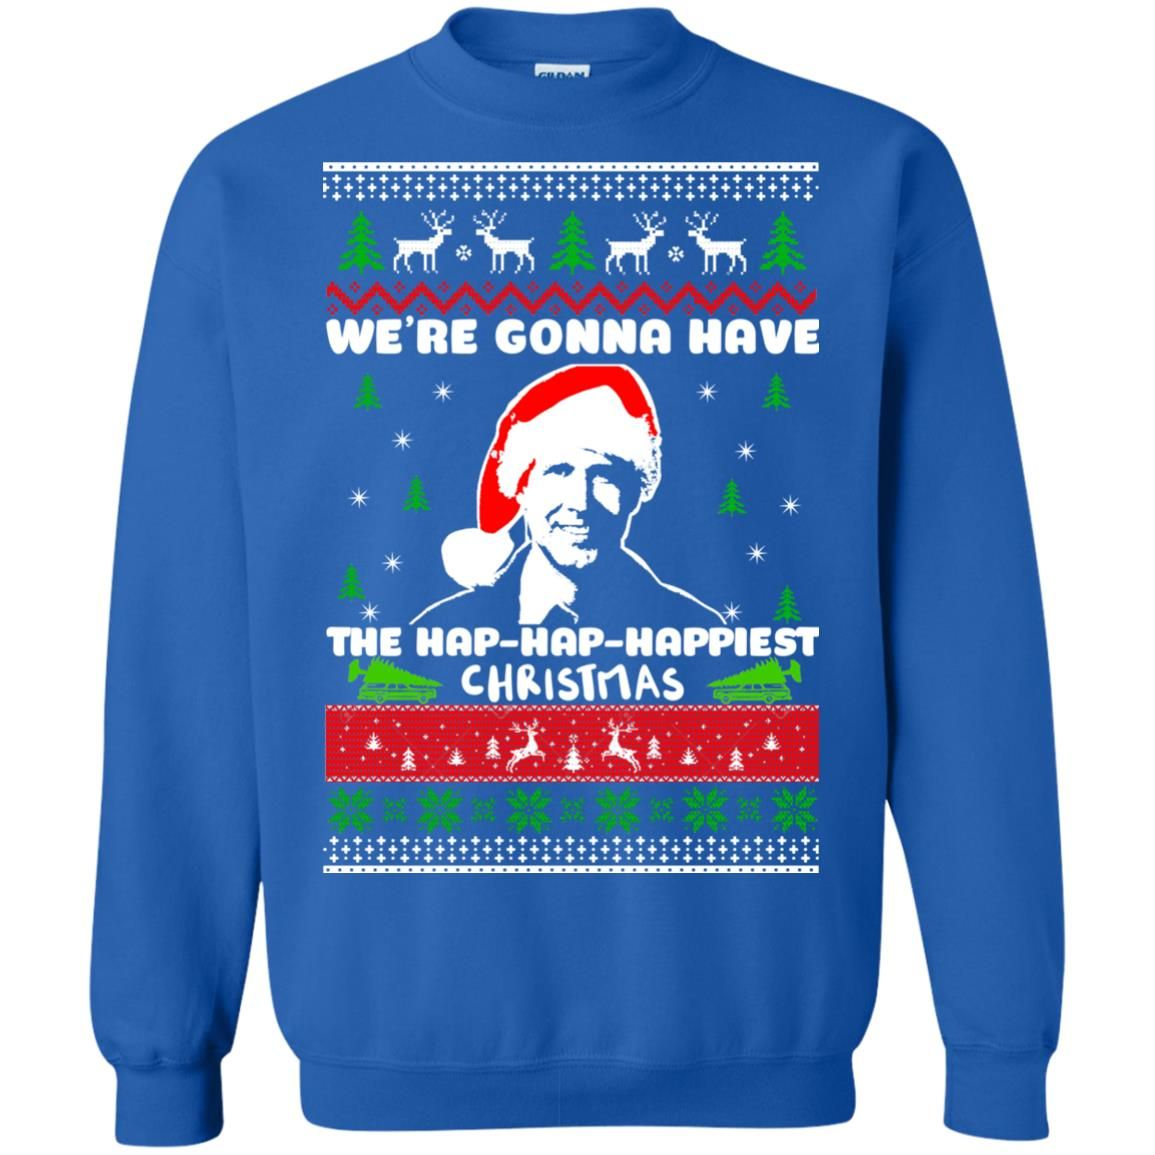 image 1751 - Christmas Vacation: We're gonna have the Hap-Hap-Happiest Christmas sweater, hoodie